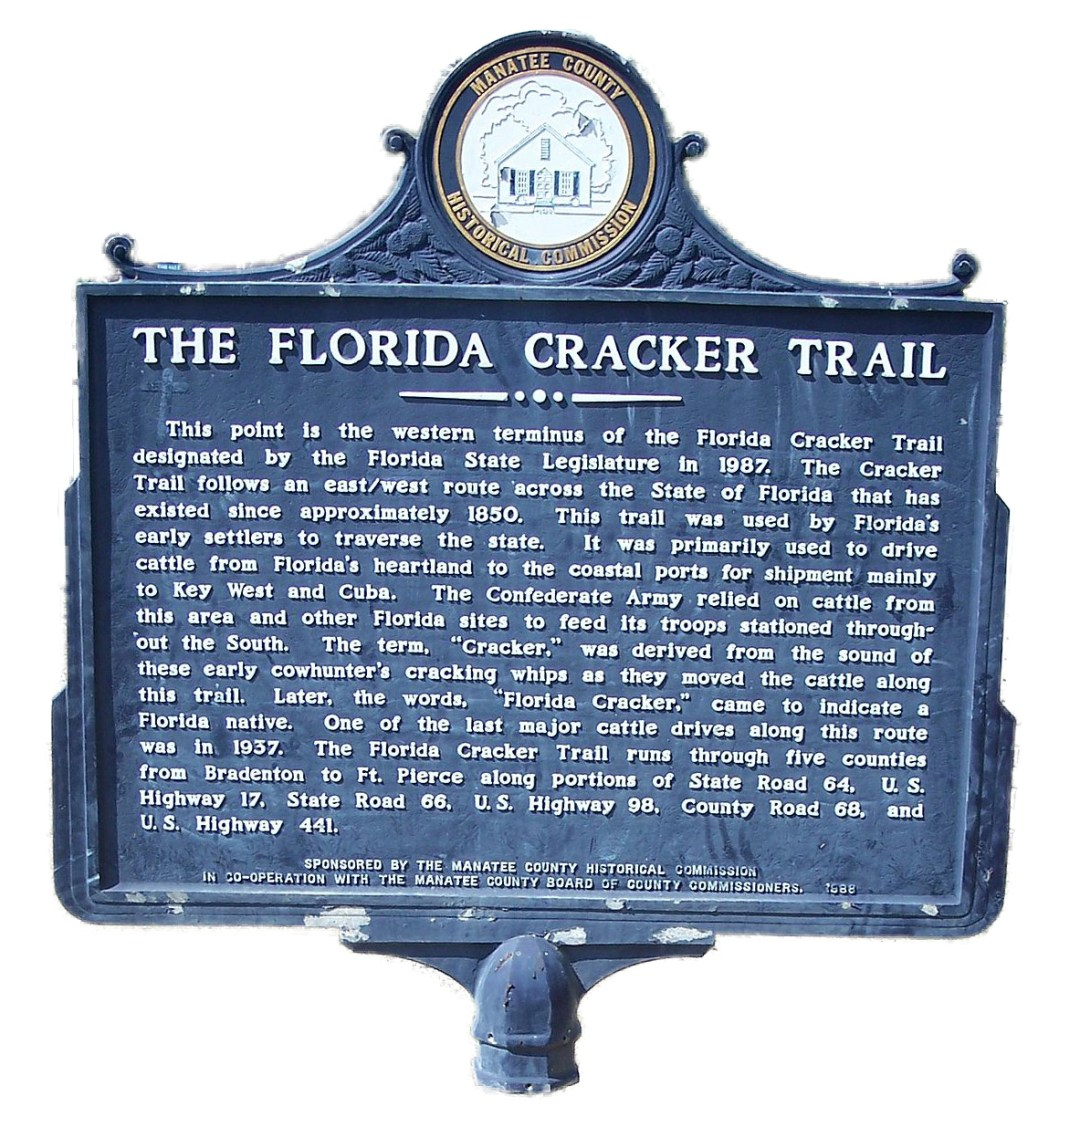 FLorida Cracker Trail Marker